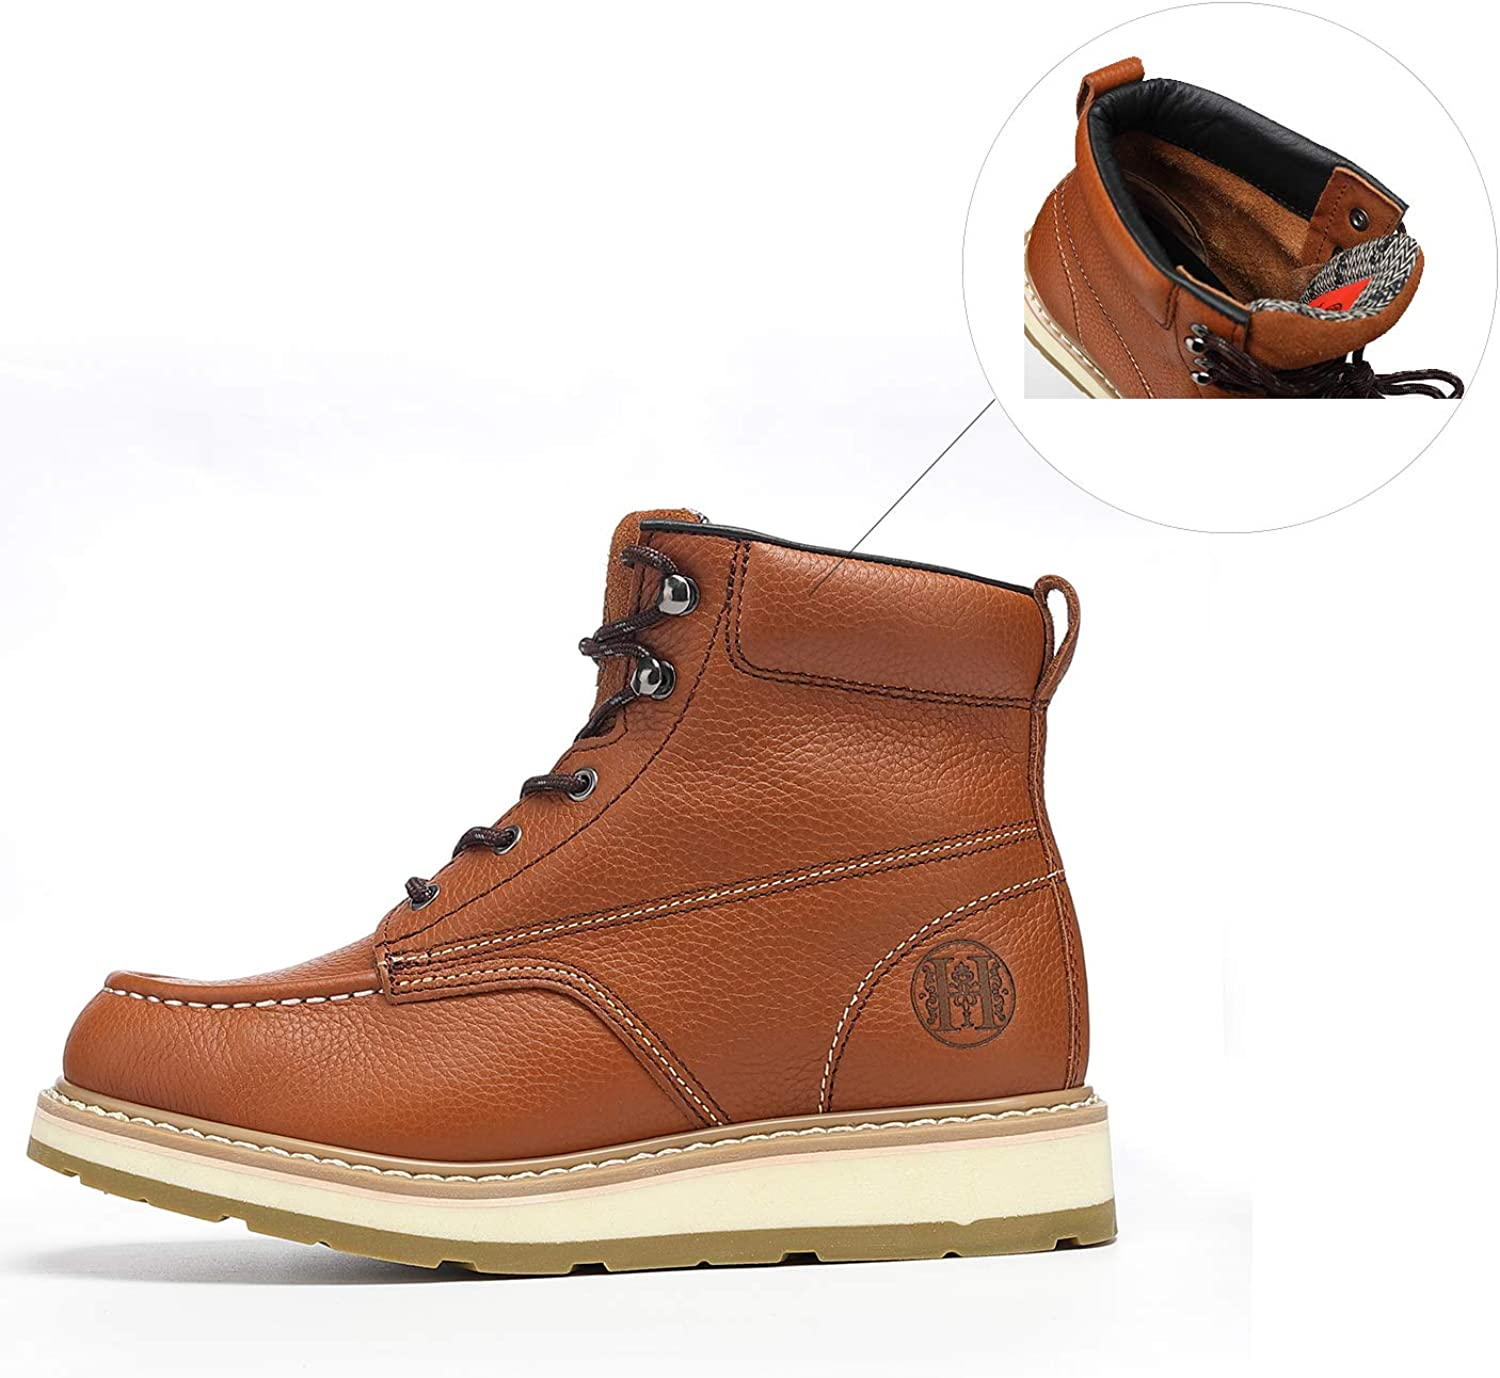 TIANXING Work Boots for Men 10.5 Safety Working Boots